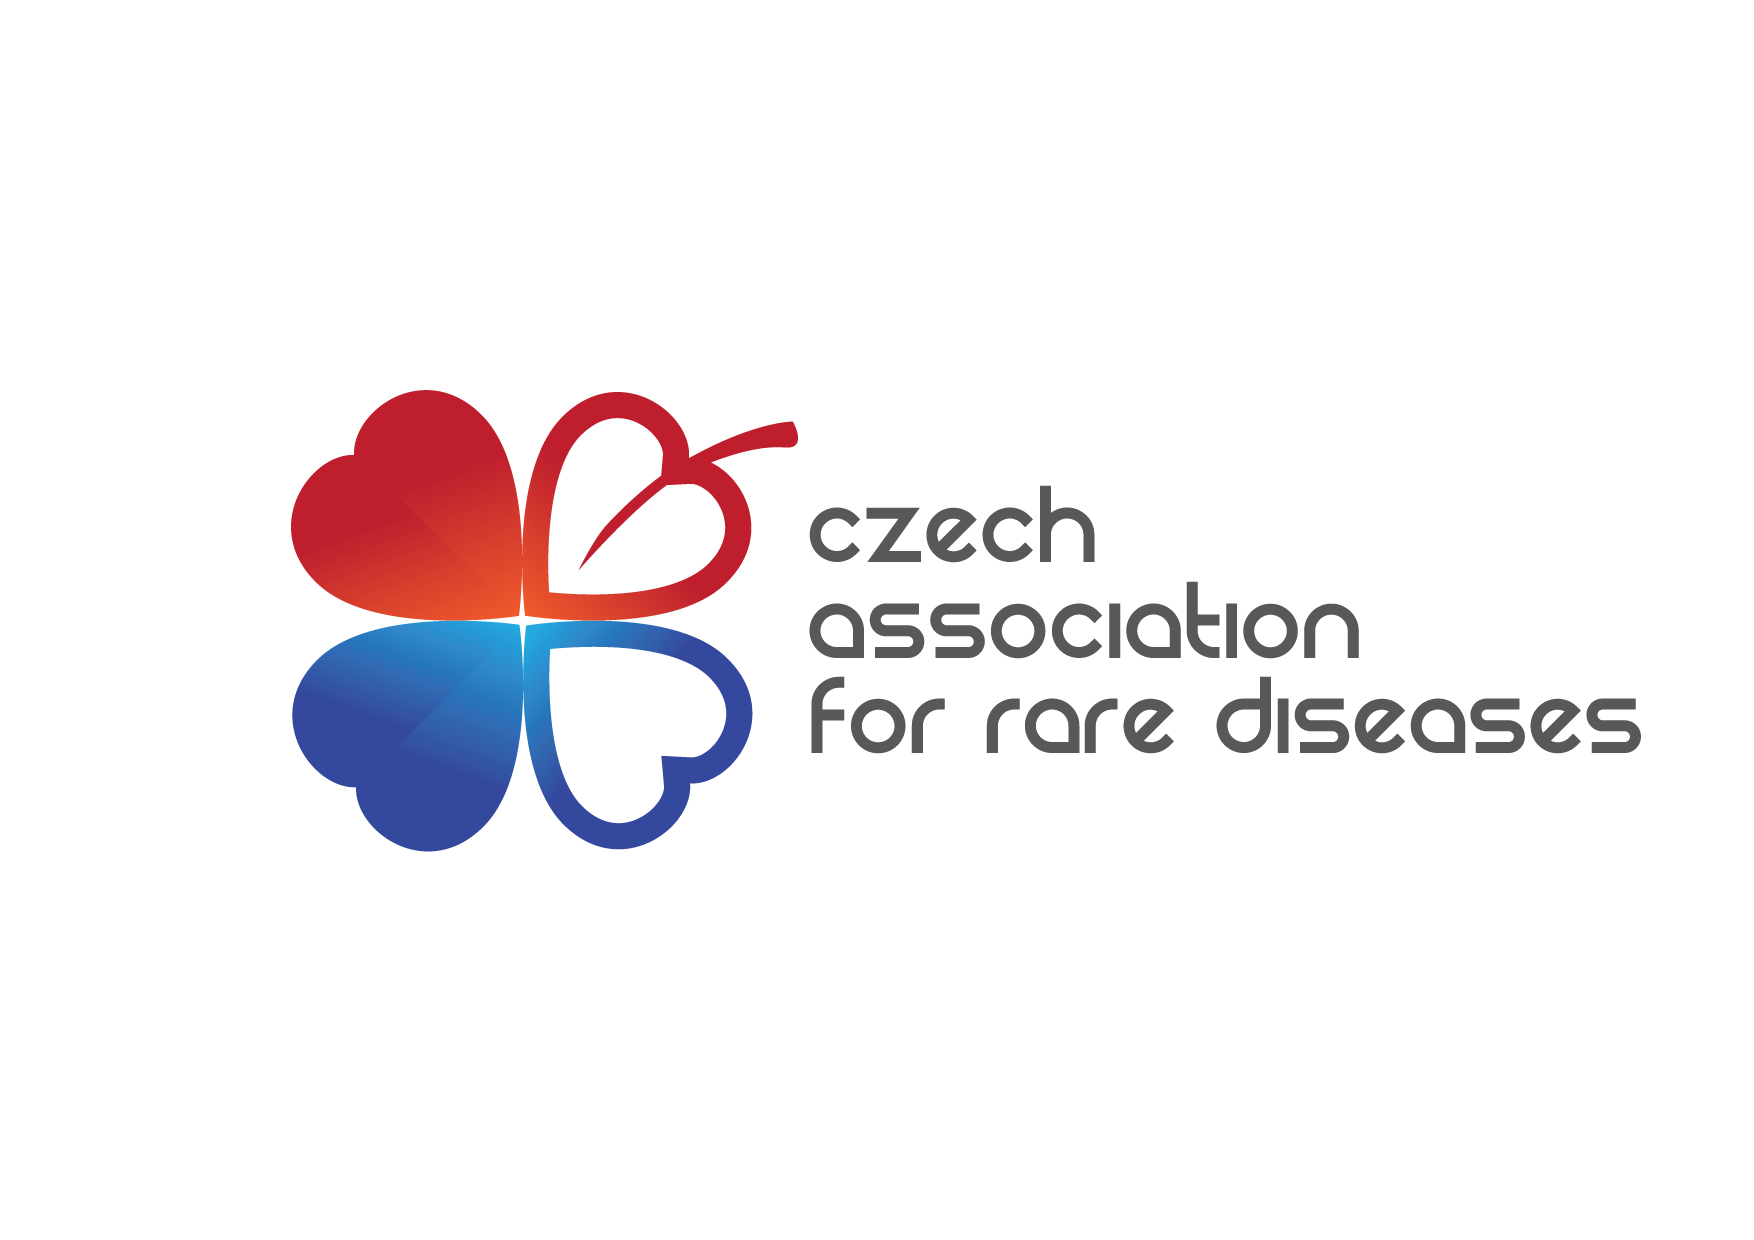 czech association for rare diseases LOGO